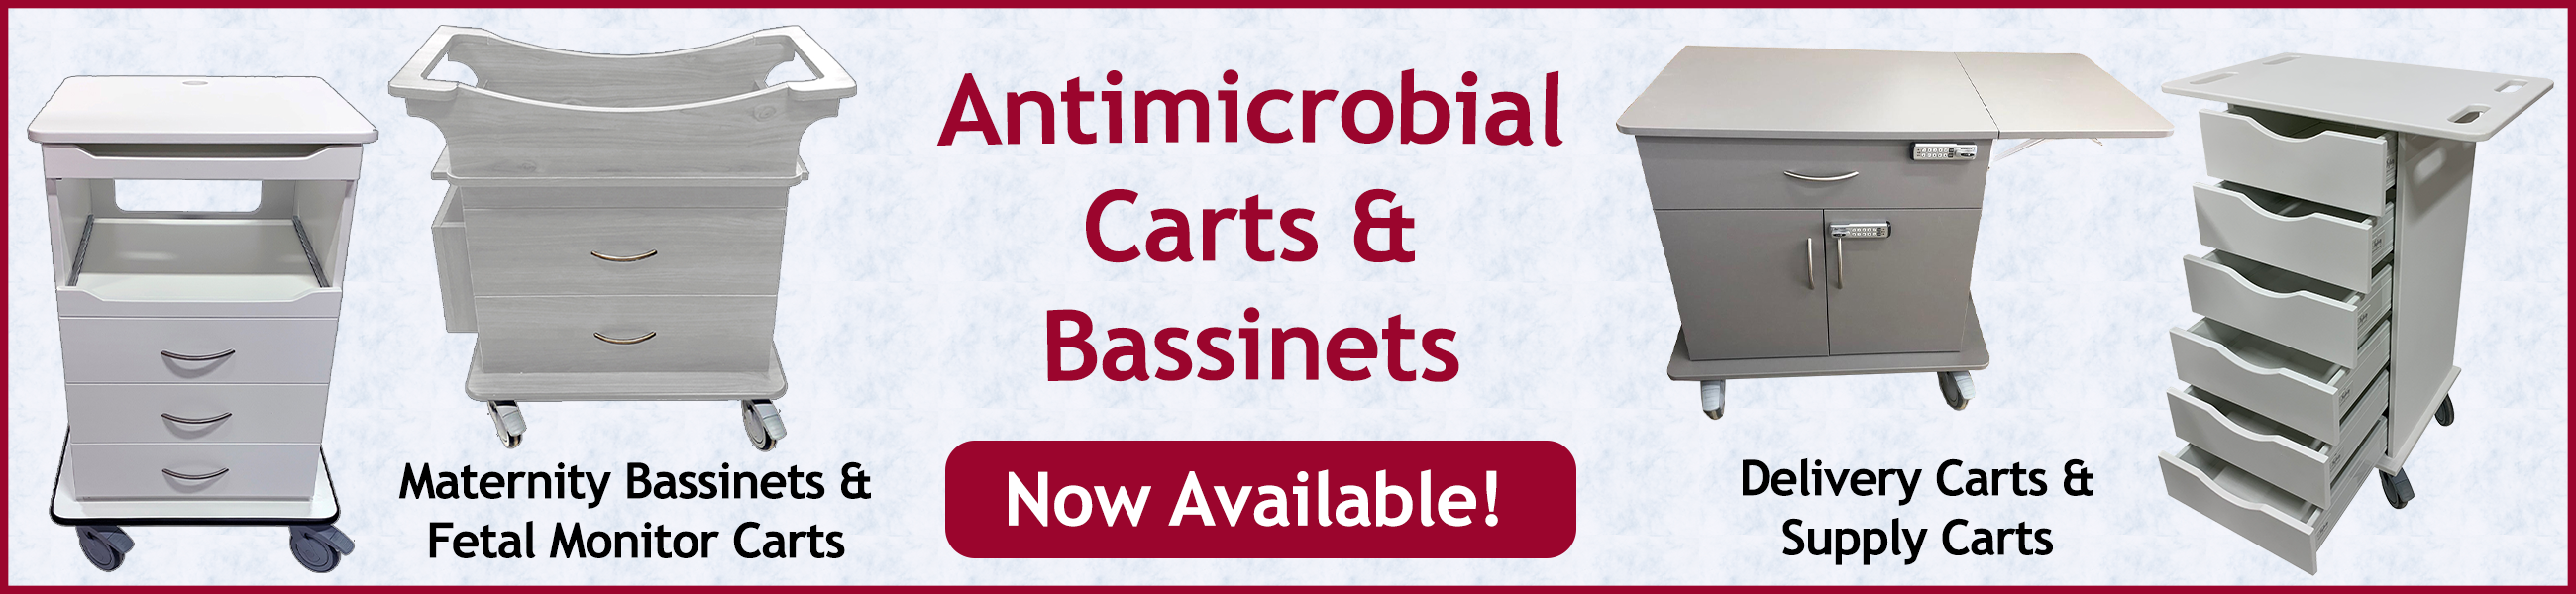 antimicrobial banner